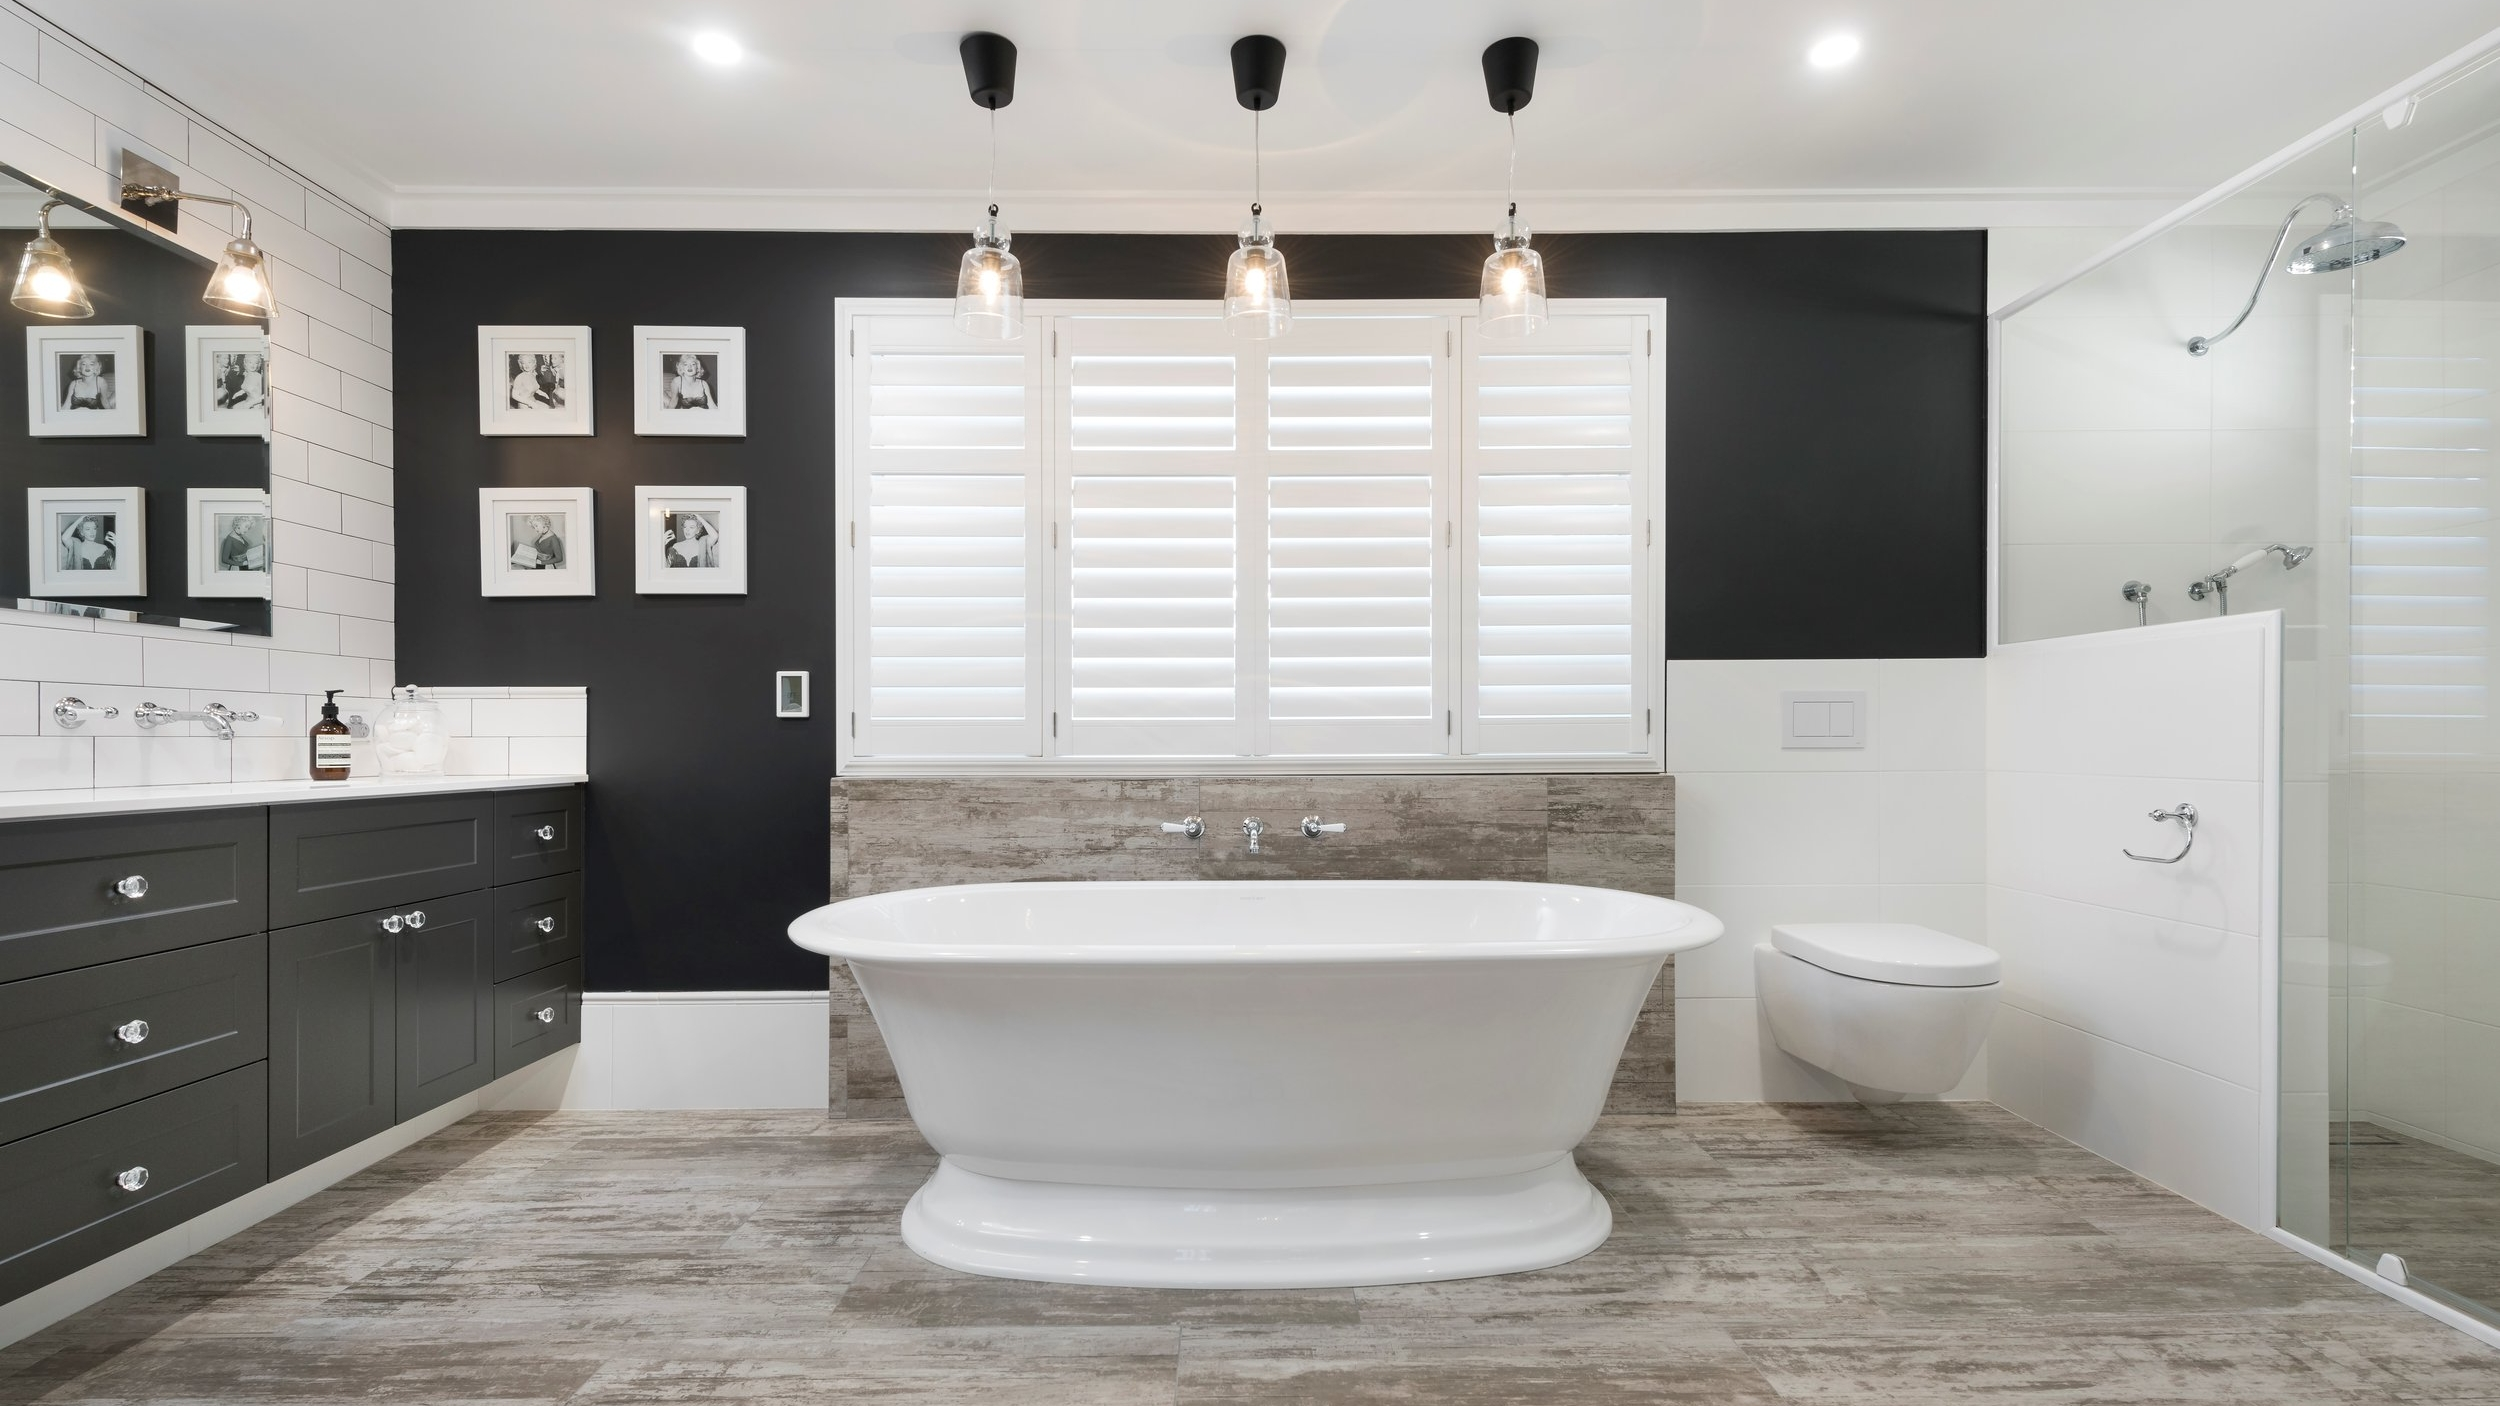 Hamptons Style Decor For Bathrooms And Kitchens